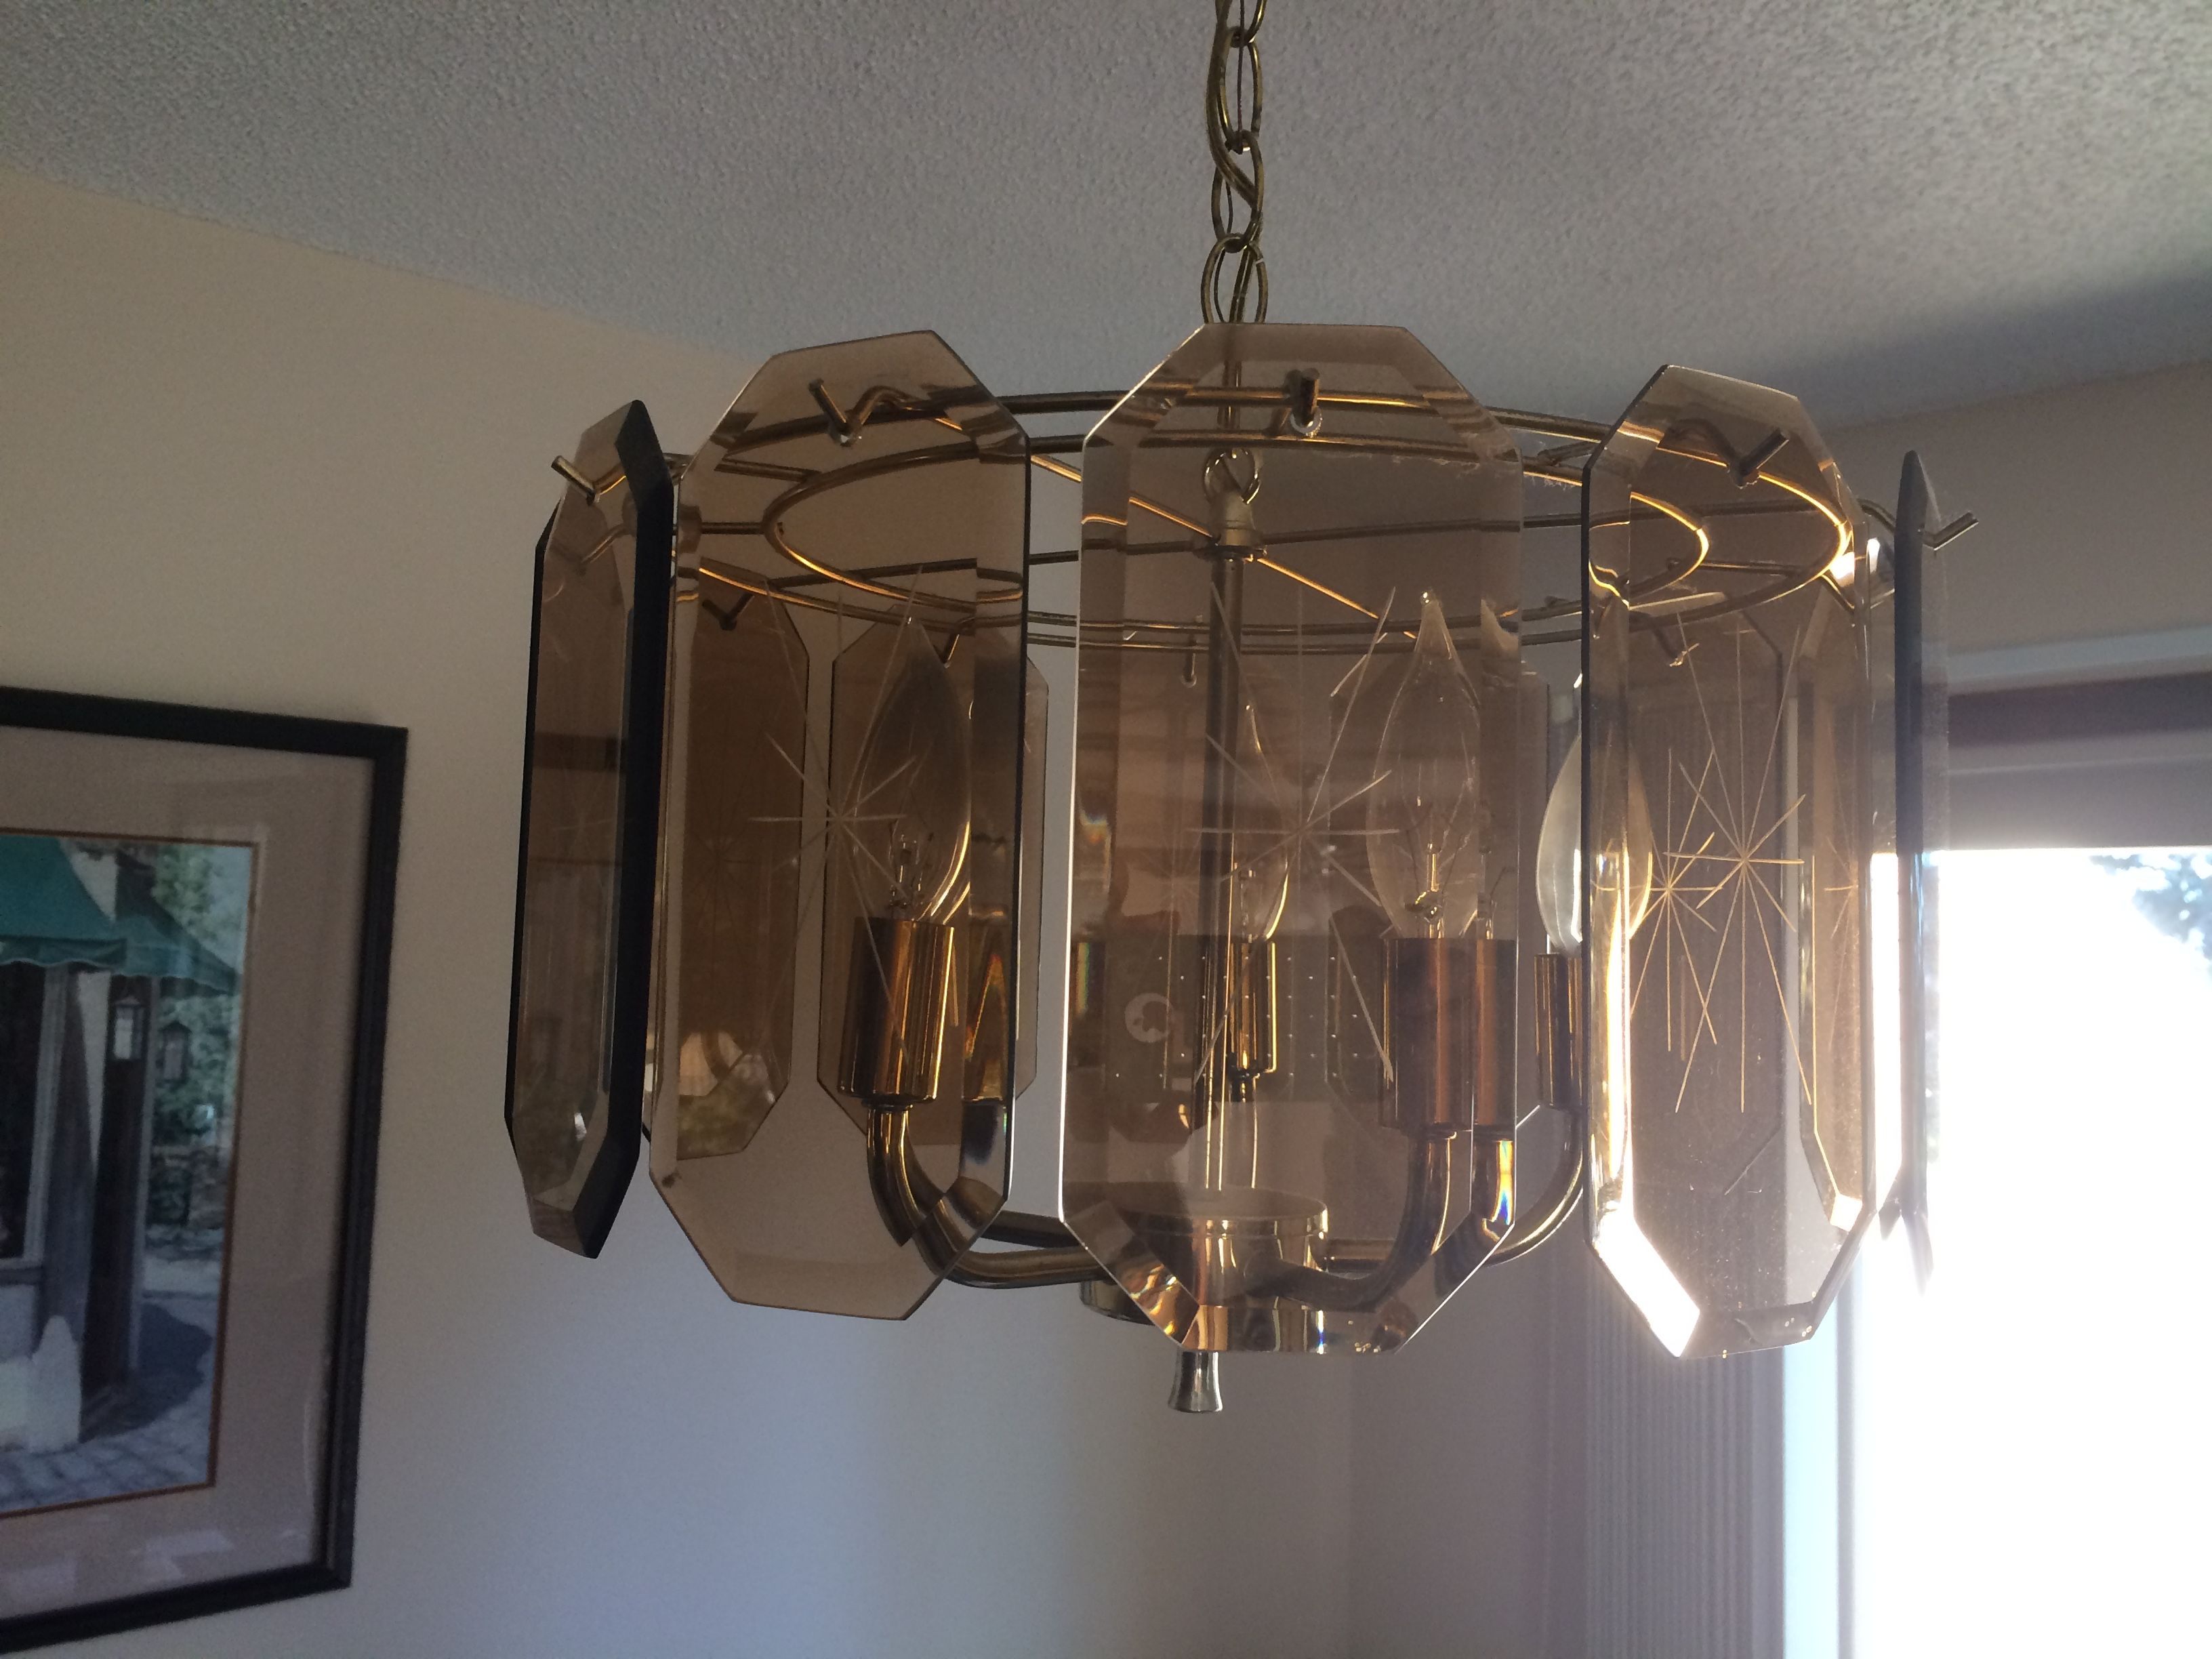 Late 70s Early 80s Style Chandelier Glass Pendant Light Outdoor Candle Chandelier Tiffany Style Chandeliers